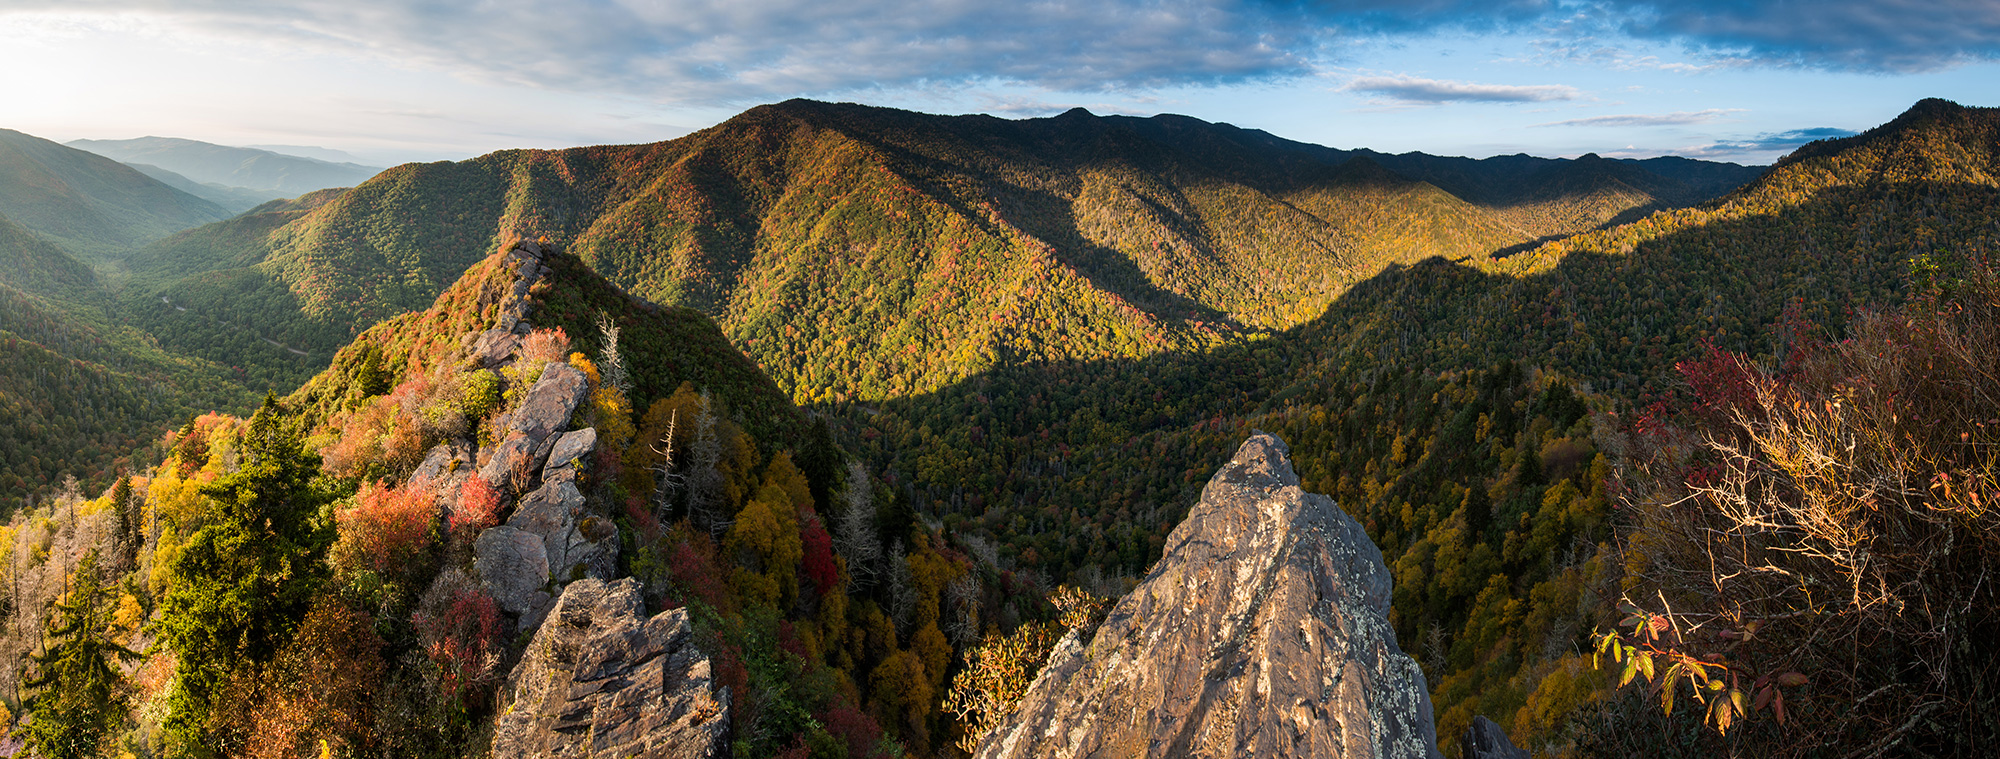 Chimney Tops Panorama – Great Smoky Mountains National Park, Tennessee